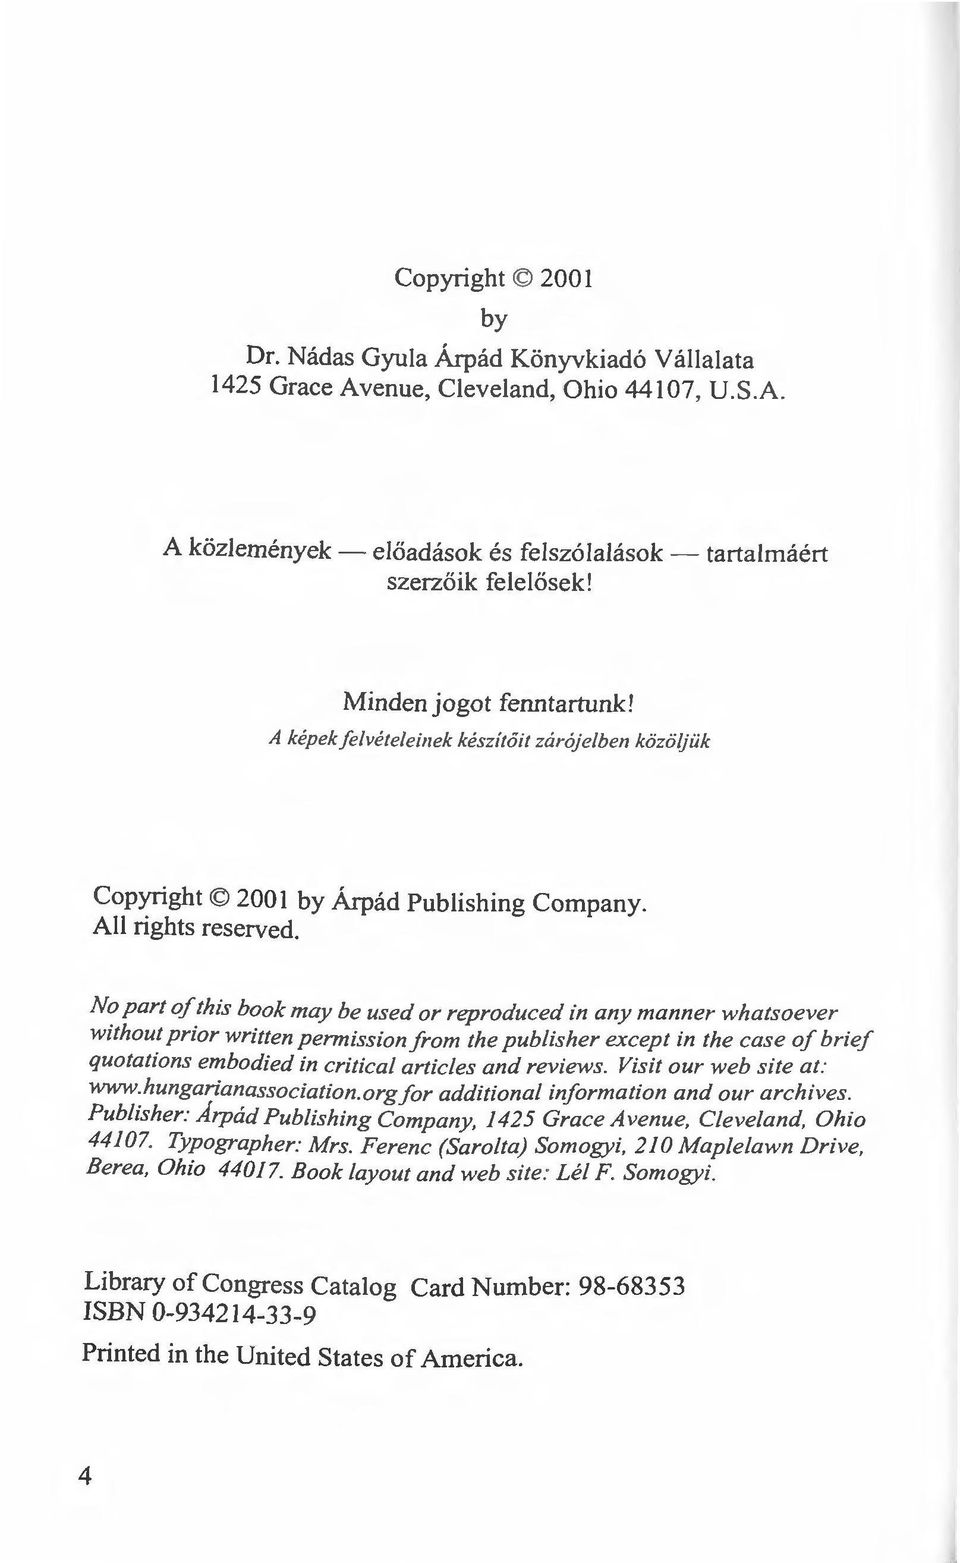 No part ojthis book may be used or reproduced in any manner whatsoever without prior written permission from the publisher except in the case of brief quotations embodied in eritical artic/es and